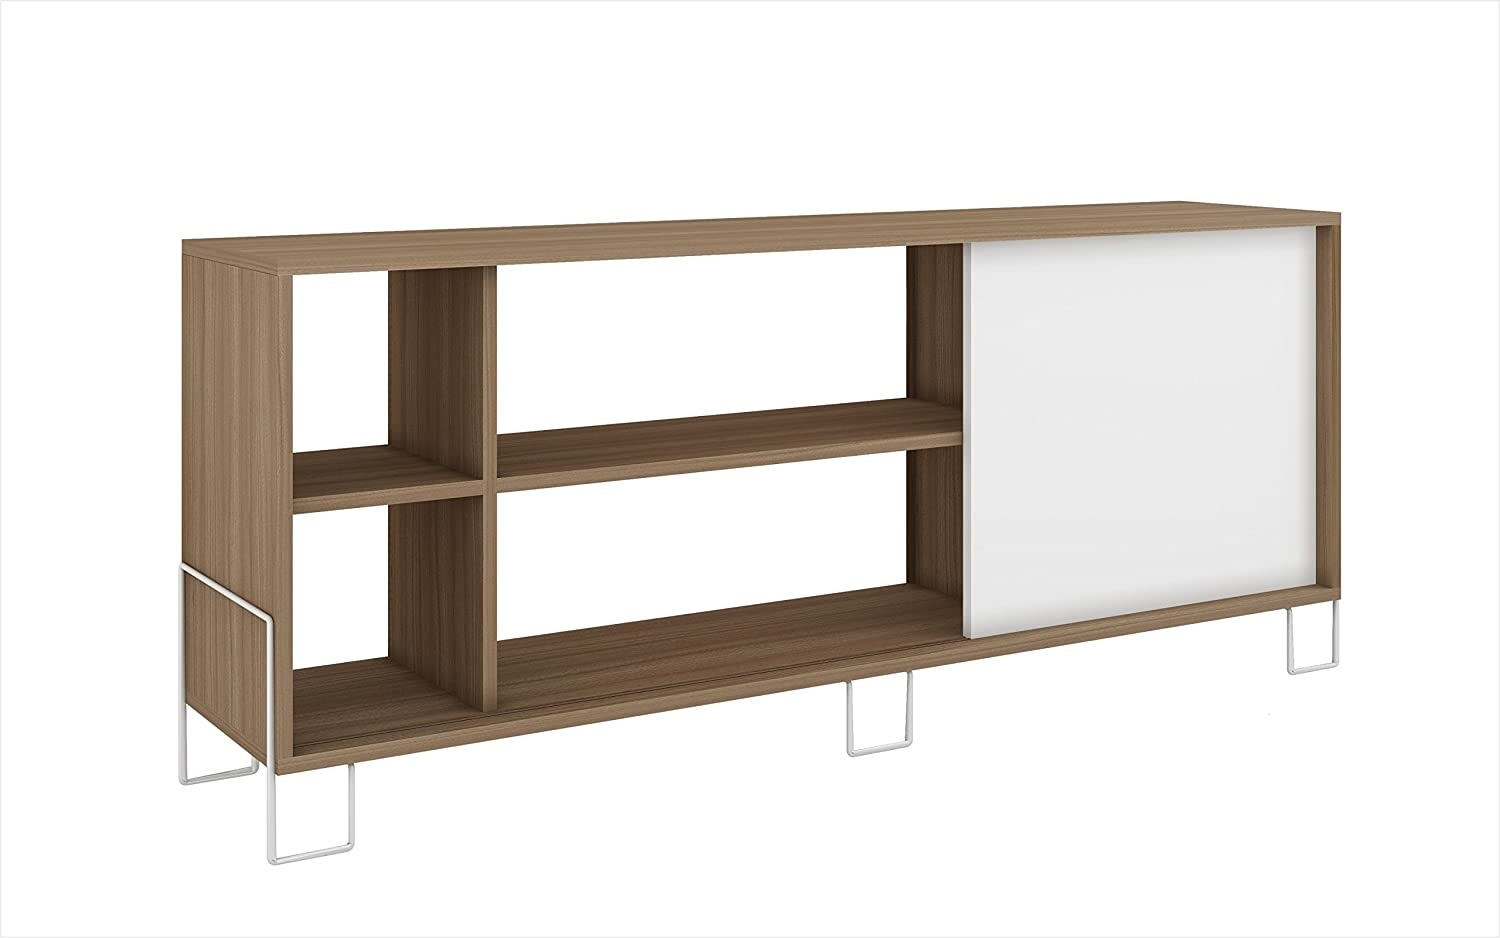 Amazon com modhaus living mid century modern 5 shelves 46 inches tv stand media cabinet with 1 sliding door and metal legs includes pen white and